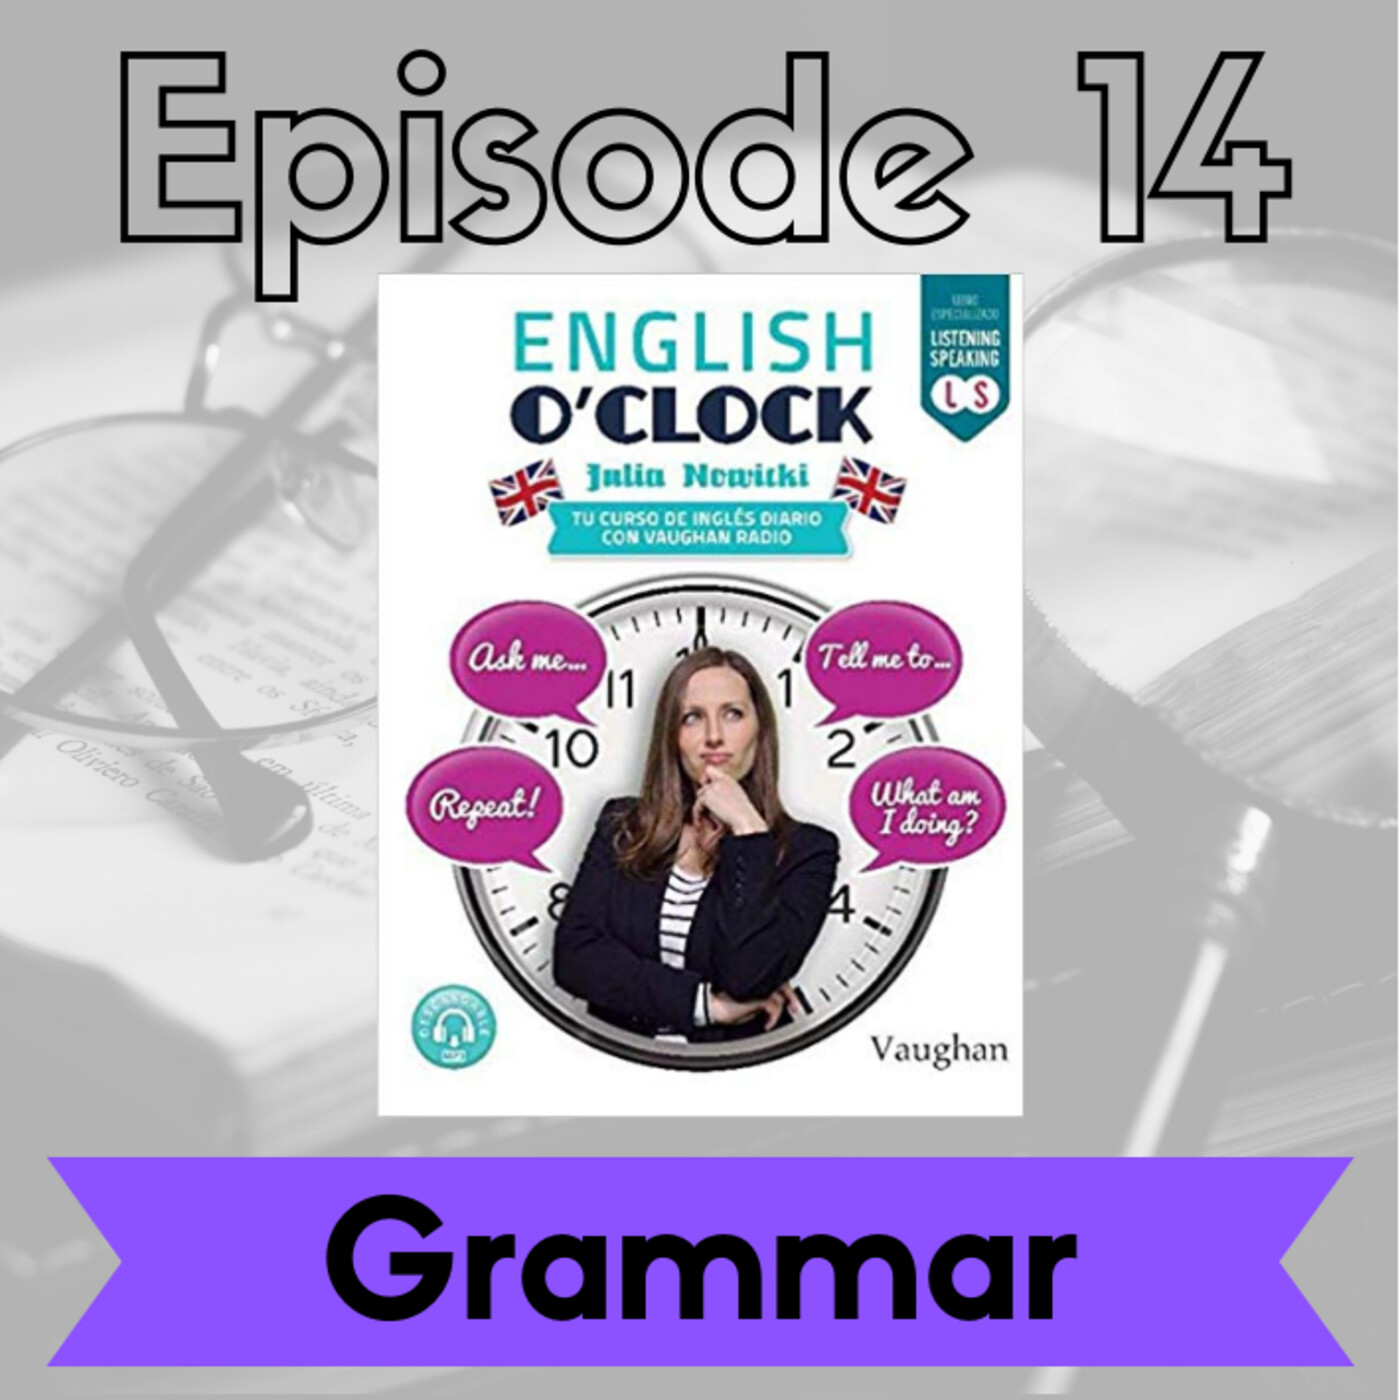 English o'clock 2.0 - Grammar Episode 14 - Types of words (16.10.2020)